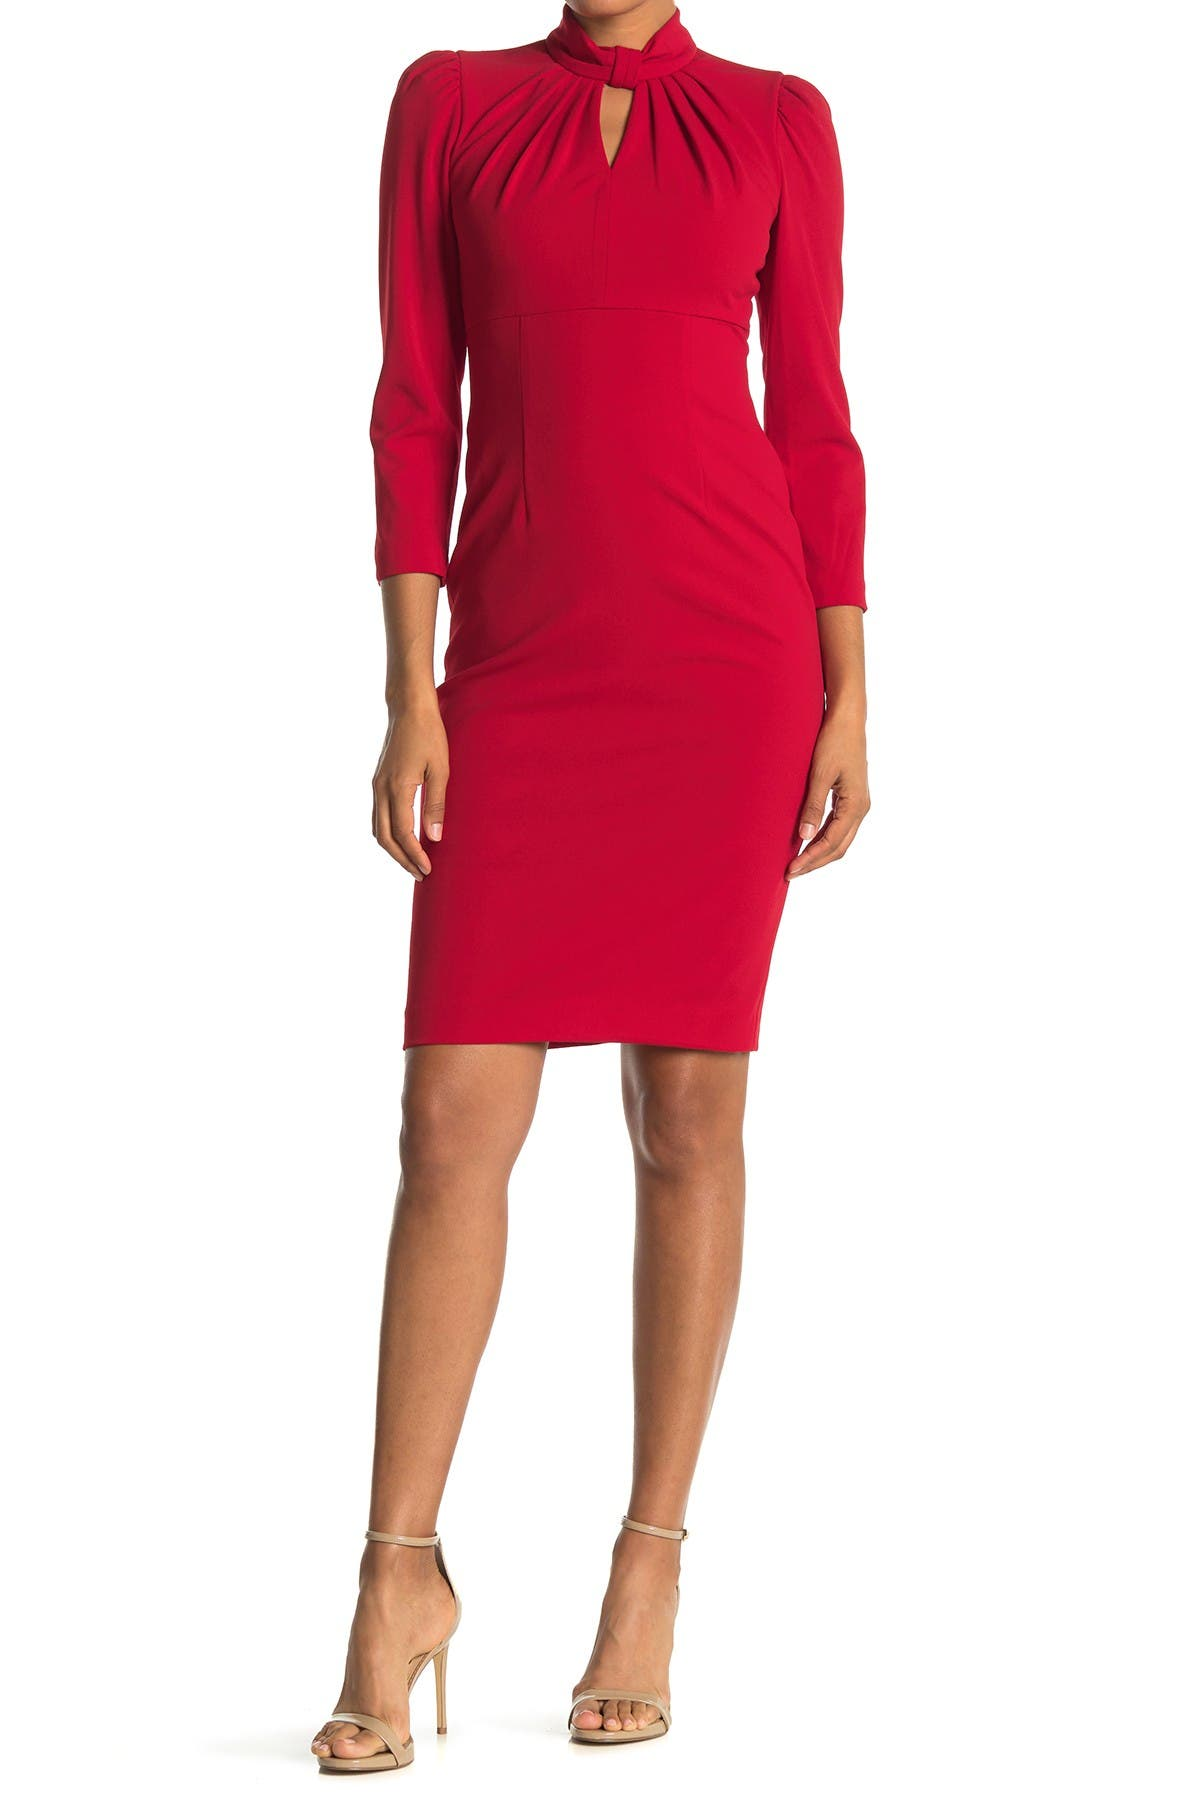 Image of Calvin Klein Mock Neck Keyhole 3/4 Sleeve Sheath Dress